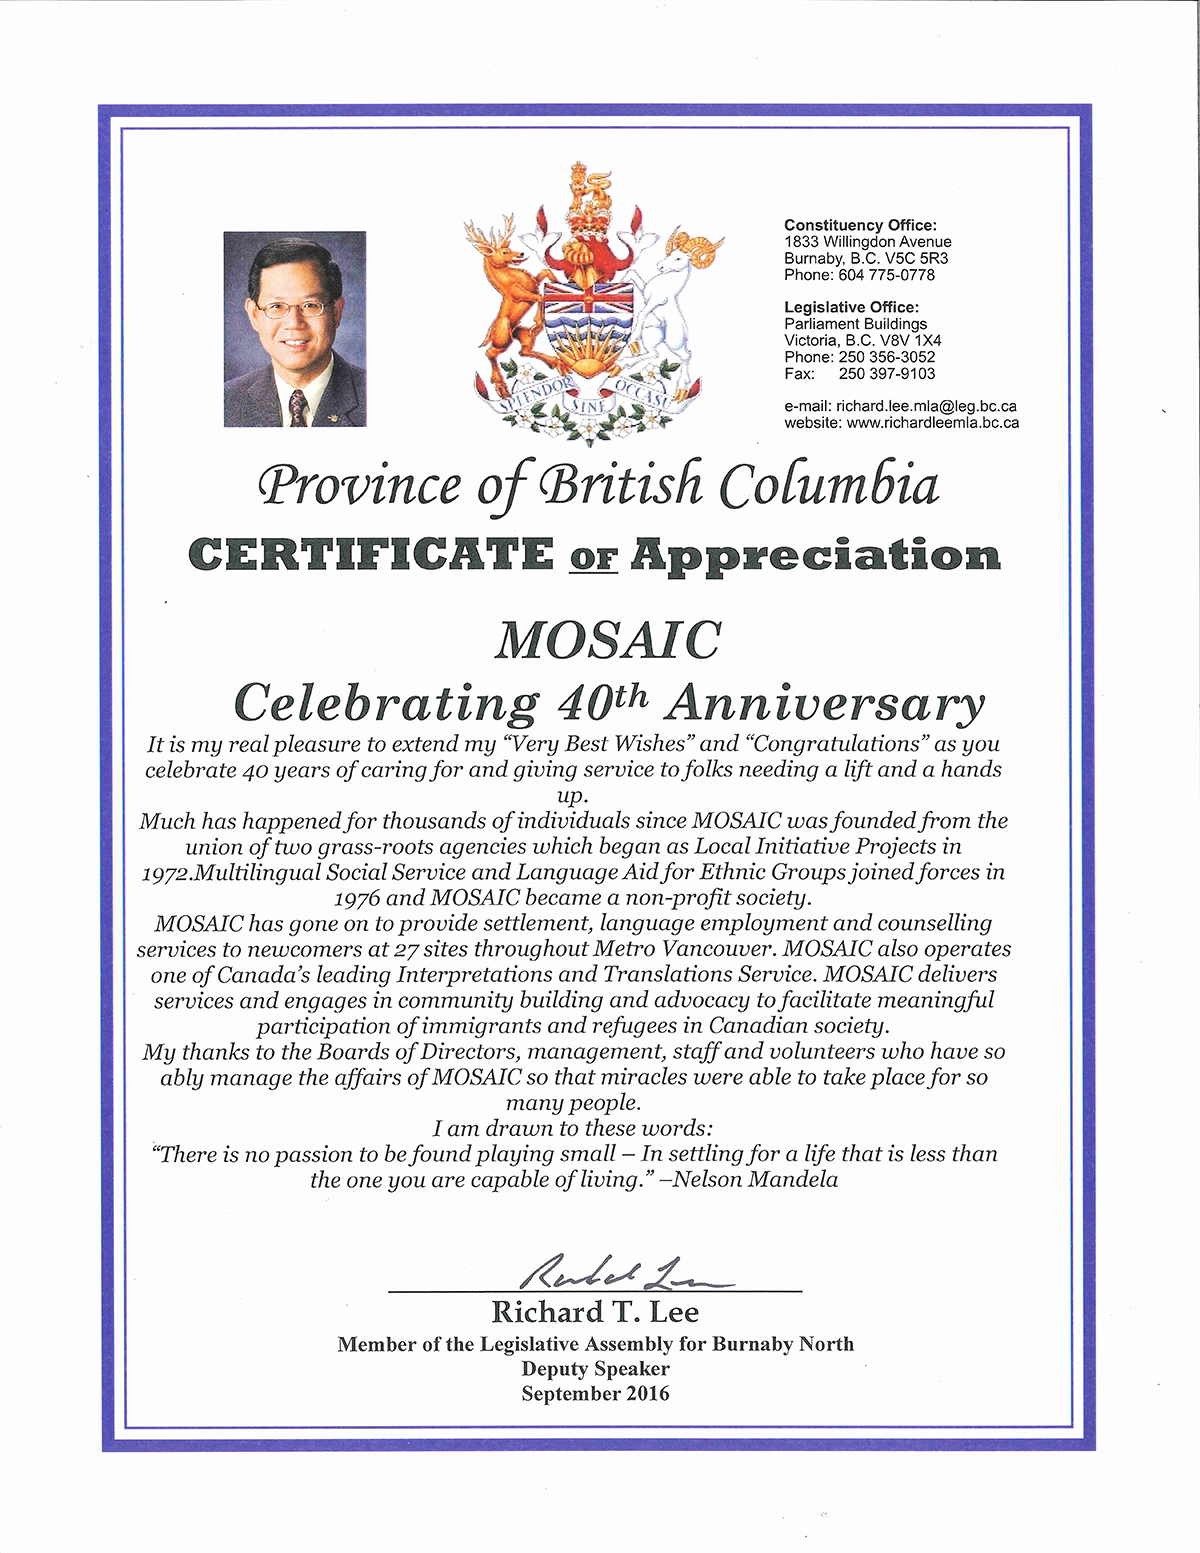 Certificate of appreciation mosaic our thanks to mr richard lee for his support recognition on behalf of the province of british columbia yelopaper Gallery